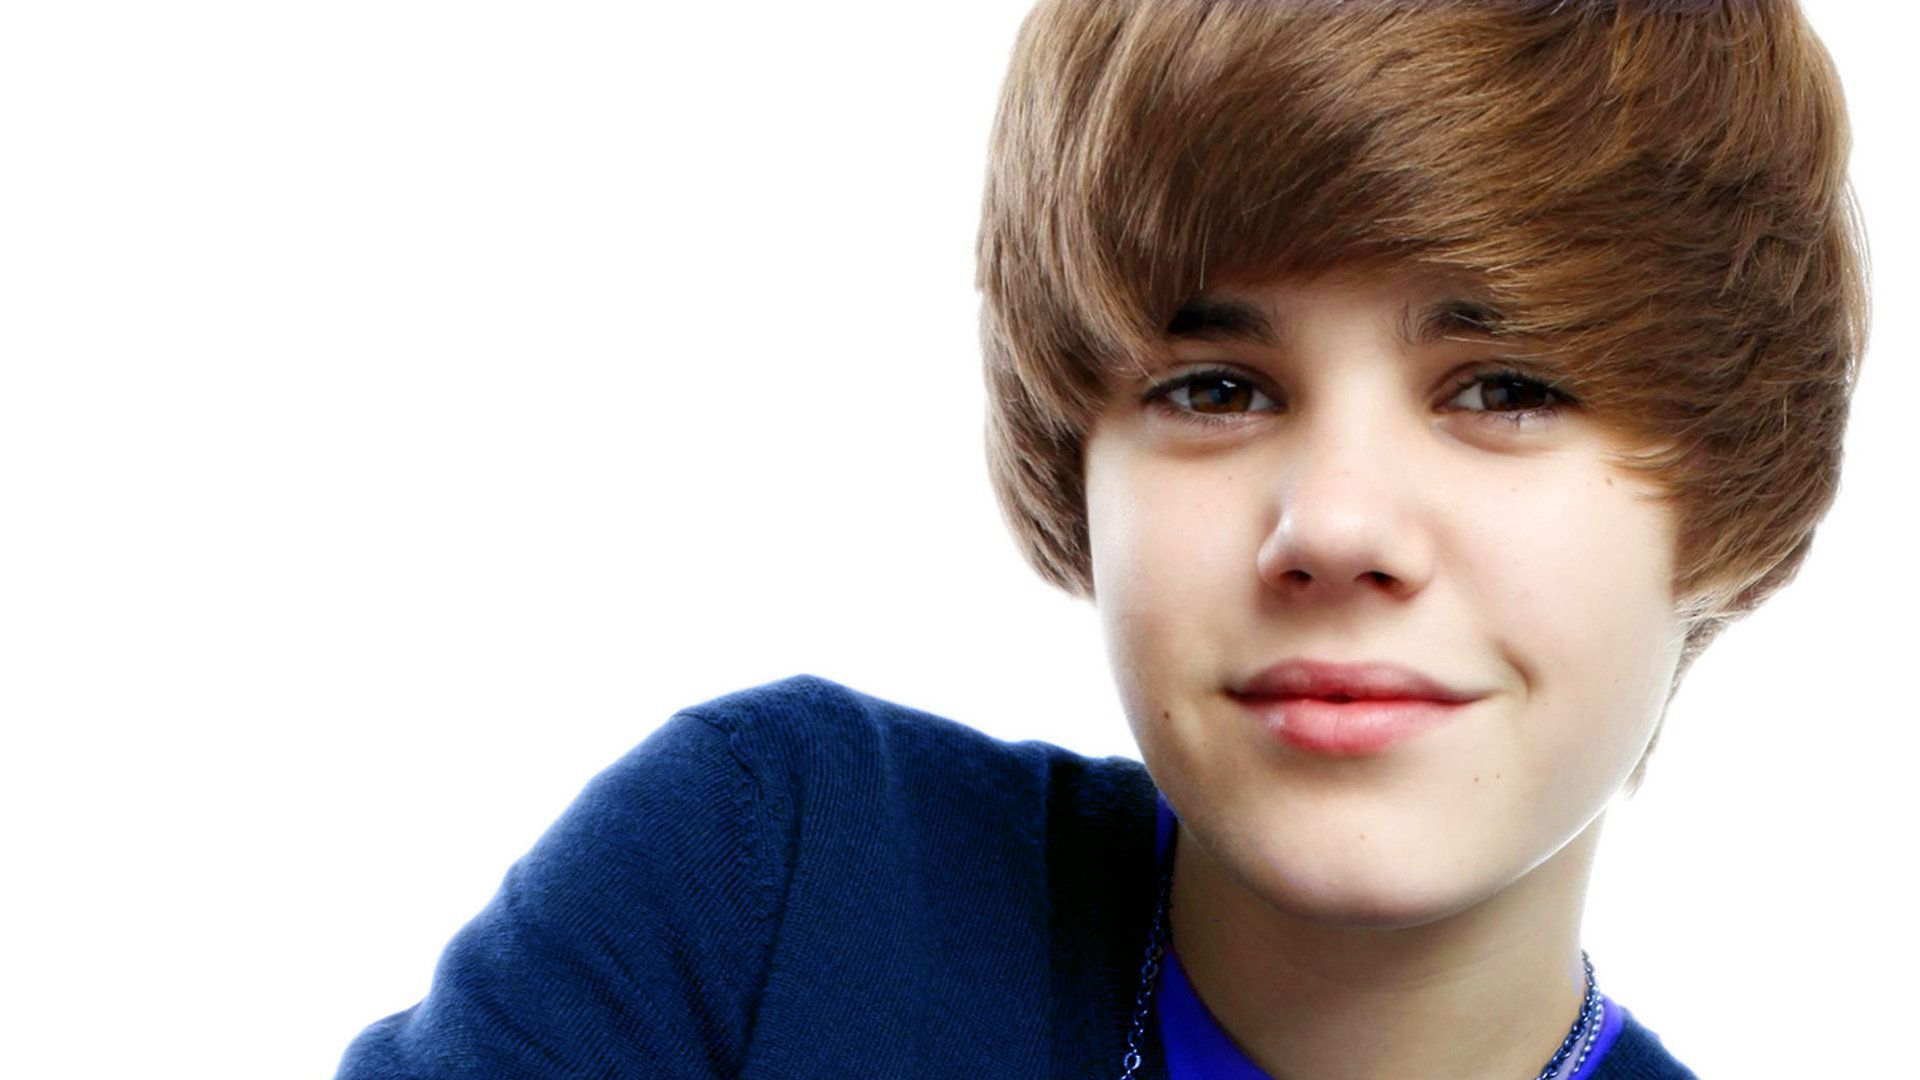 Justin Bieber HD Wallpapers - Wallpaper Cave